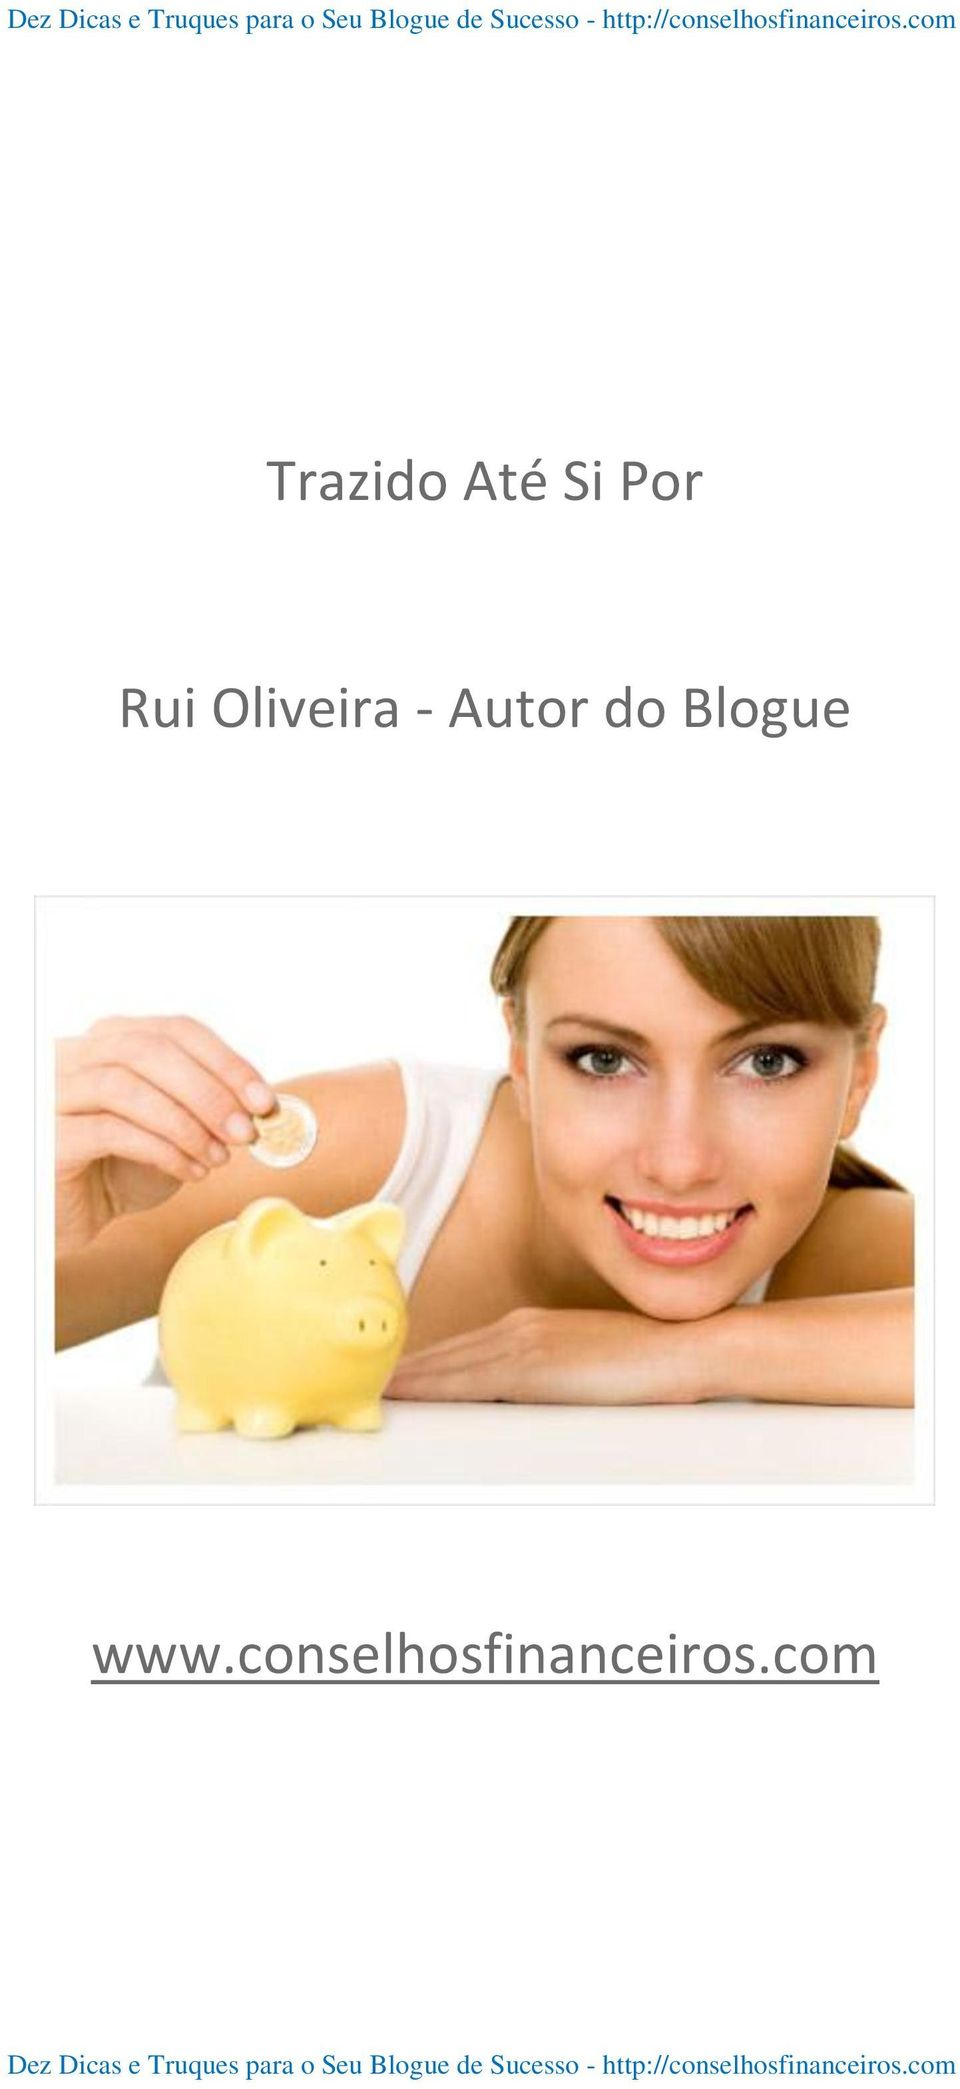 Autor do Blogue www.